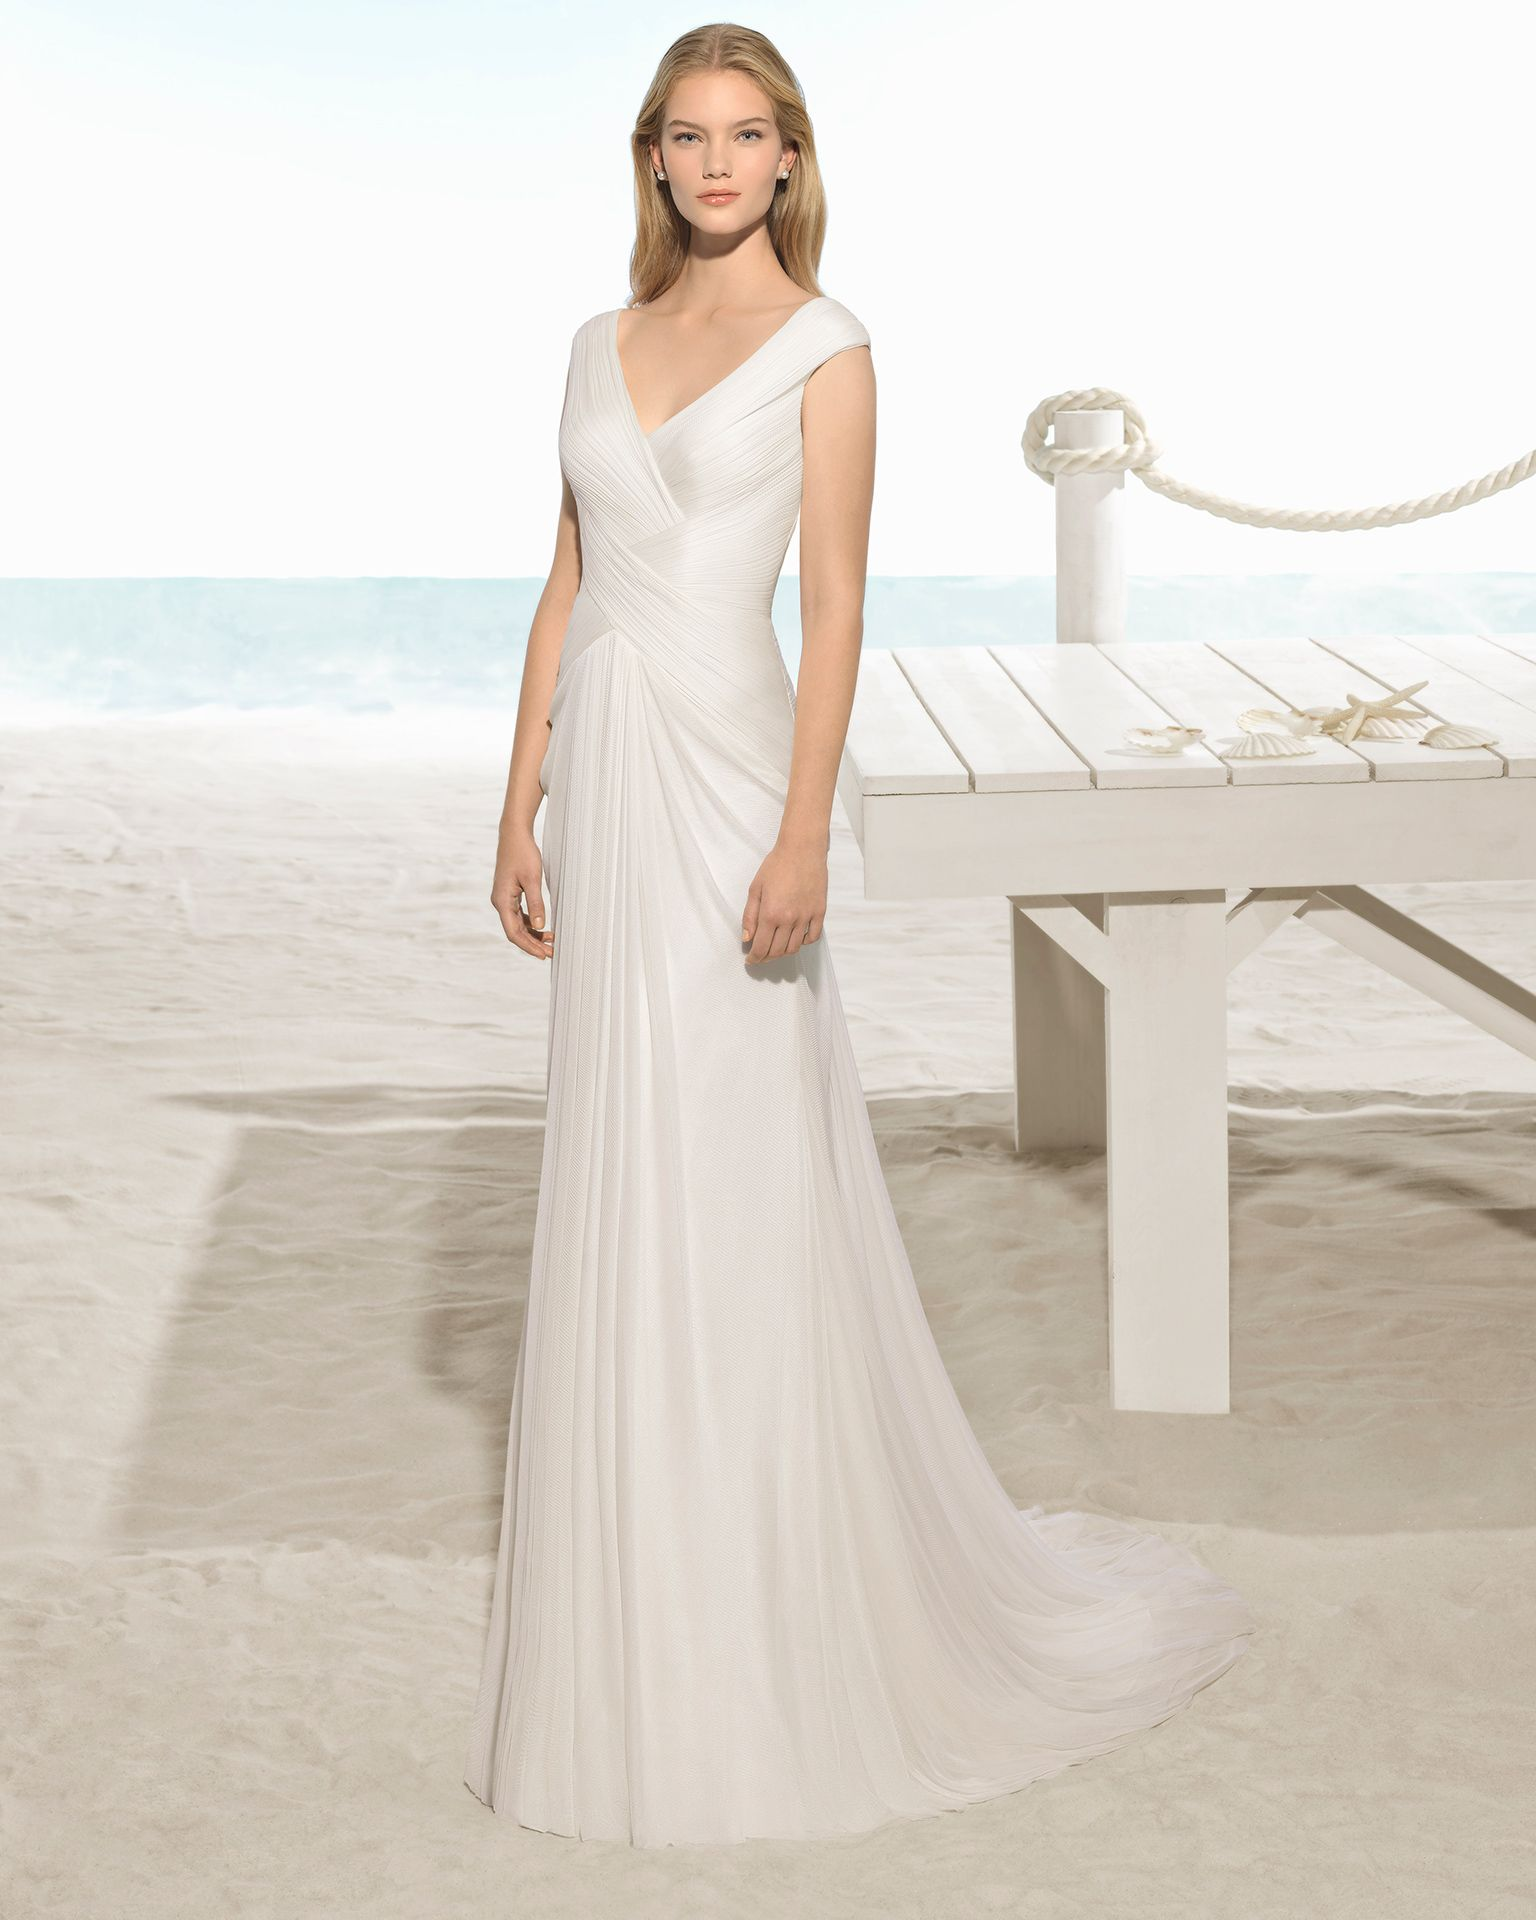 Bohostyle silk mousseline wedding dress with crossover neckline and